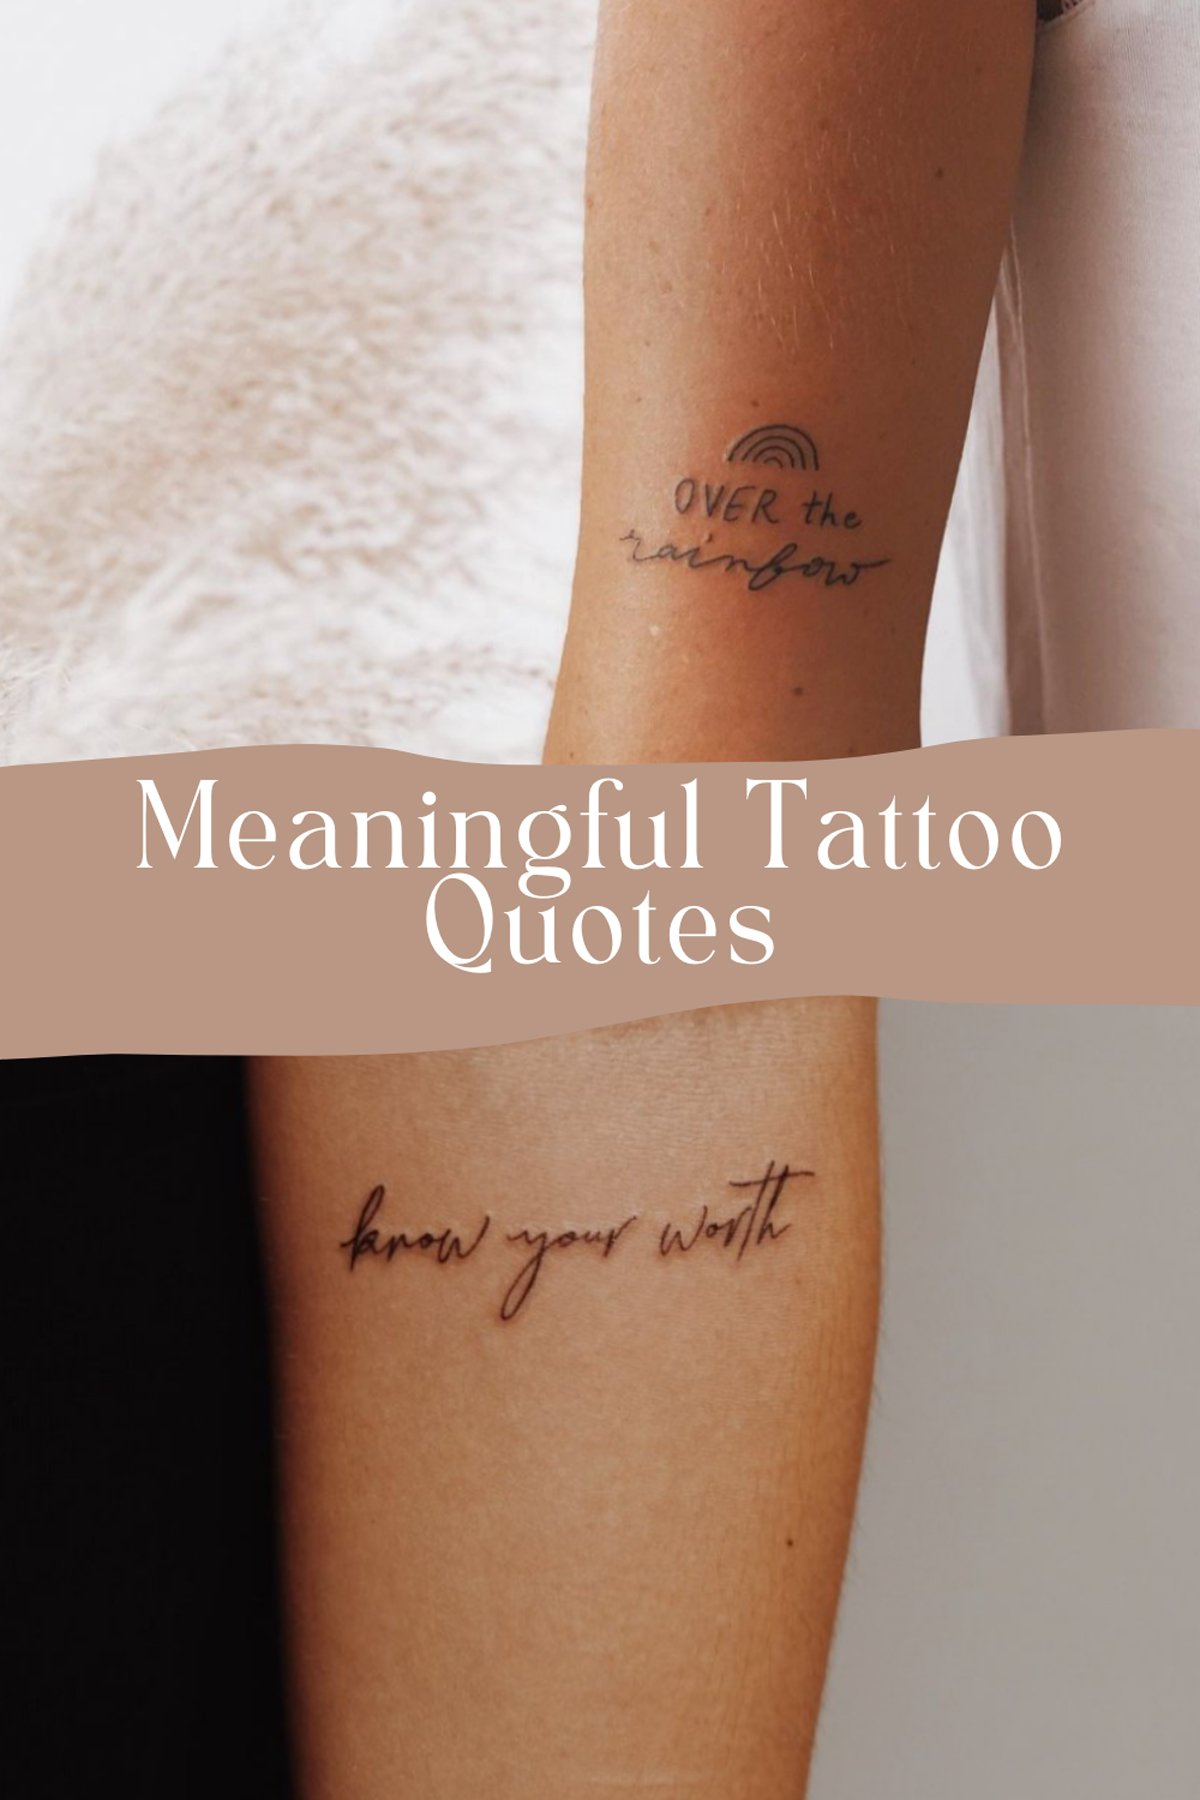 Short meaningful Tattoo Quotes